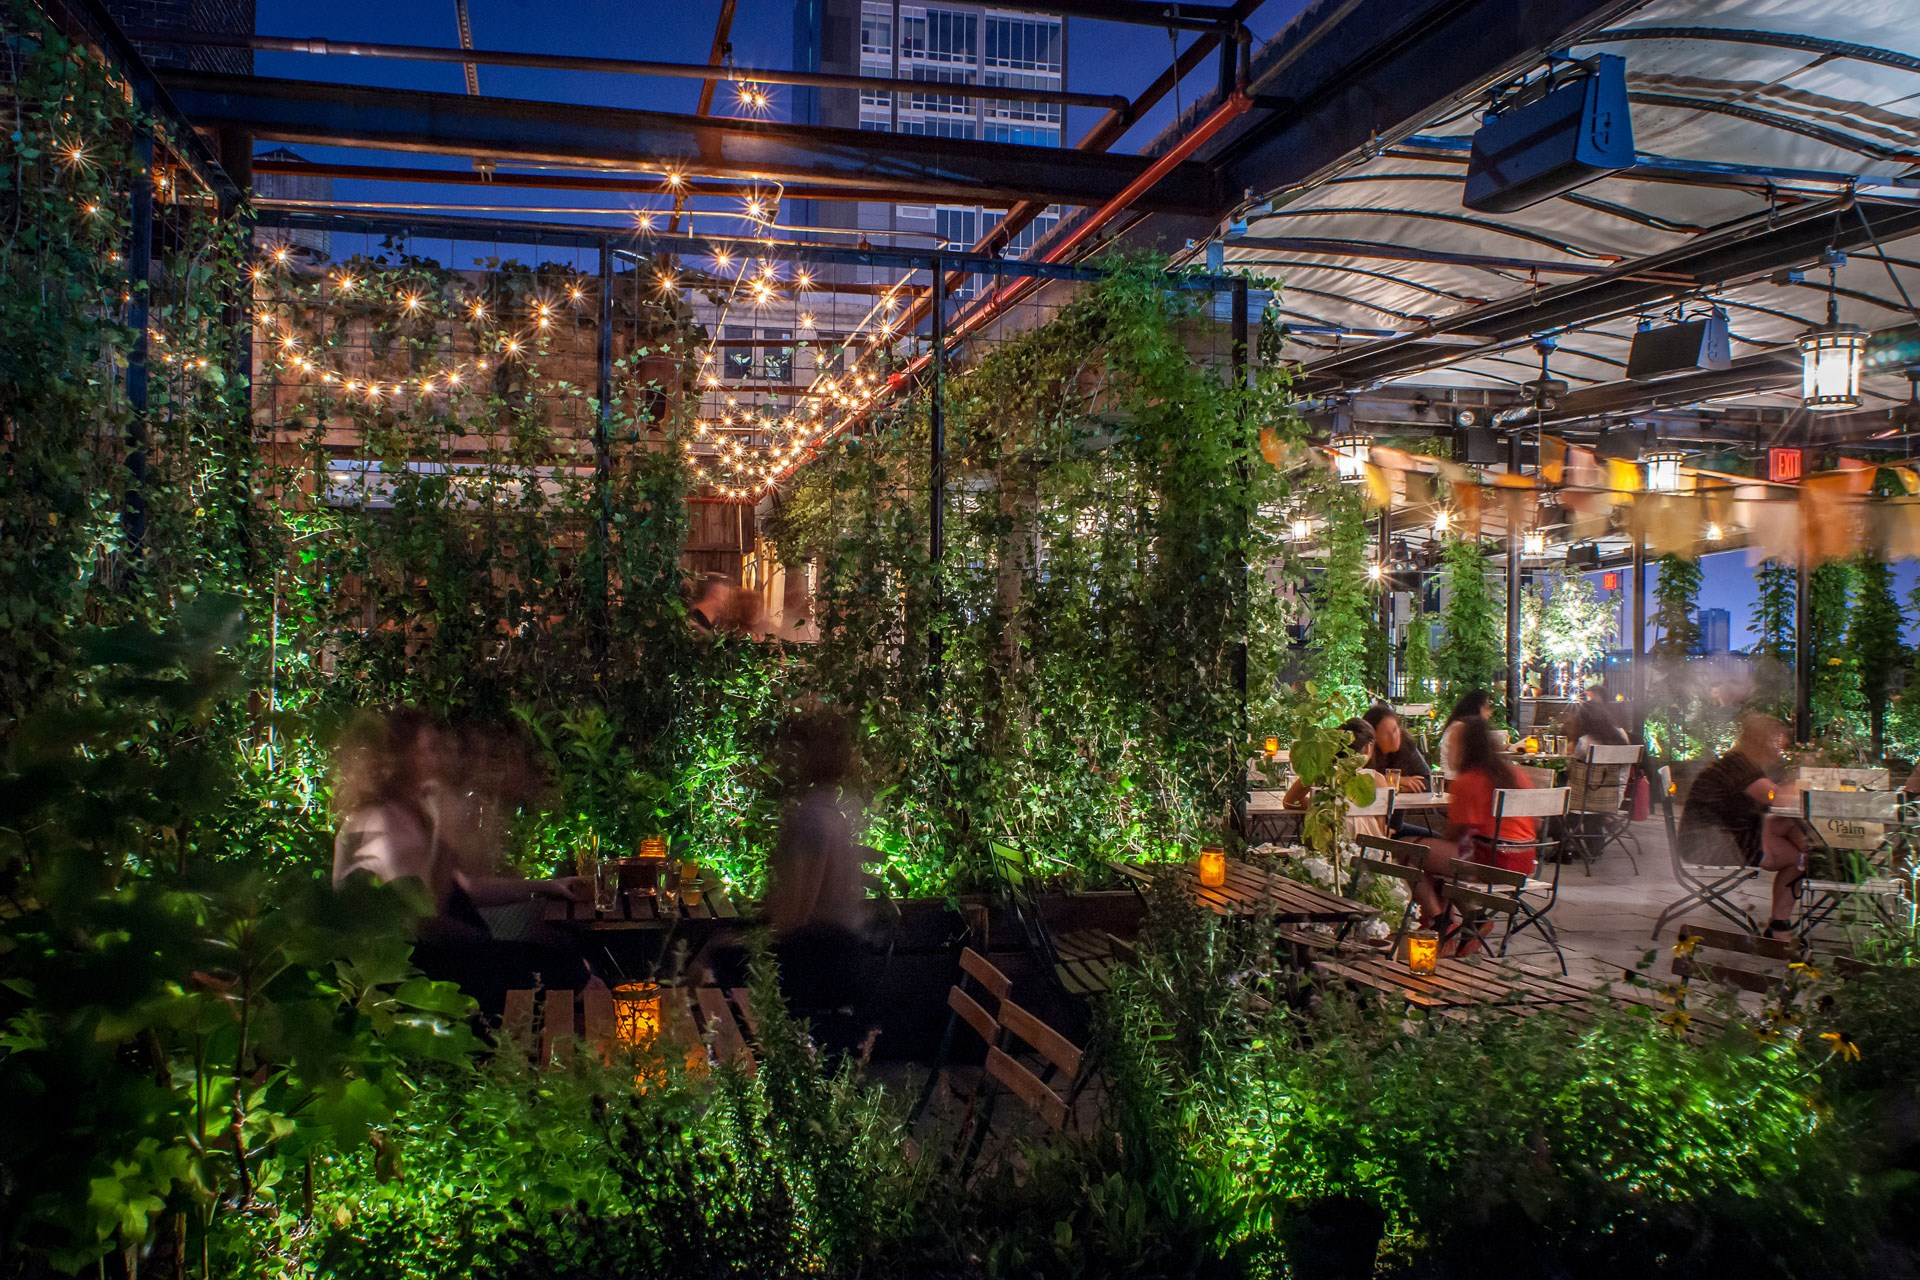 Gallow Green Roof Deck at The McKittrick Hotel in NYC adds plenty of green to the 'concrete jungle'.